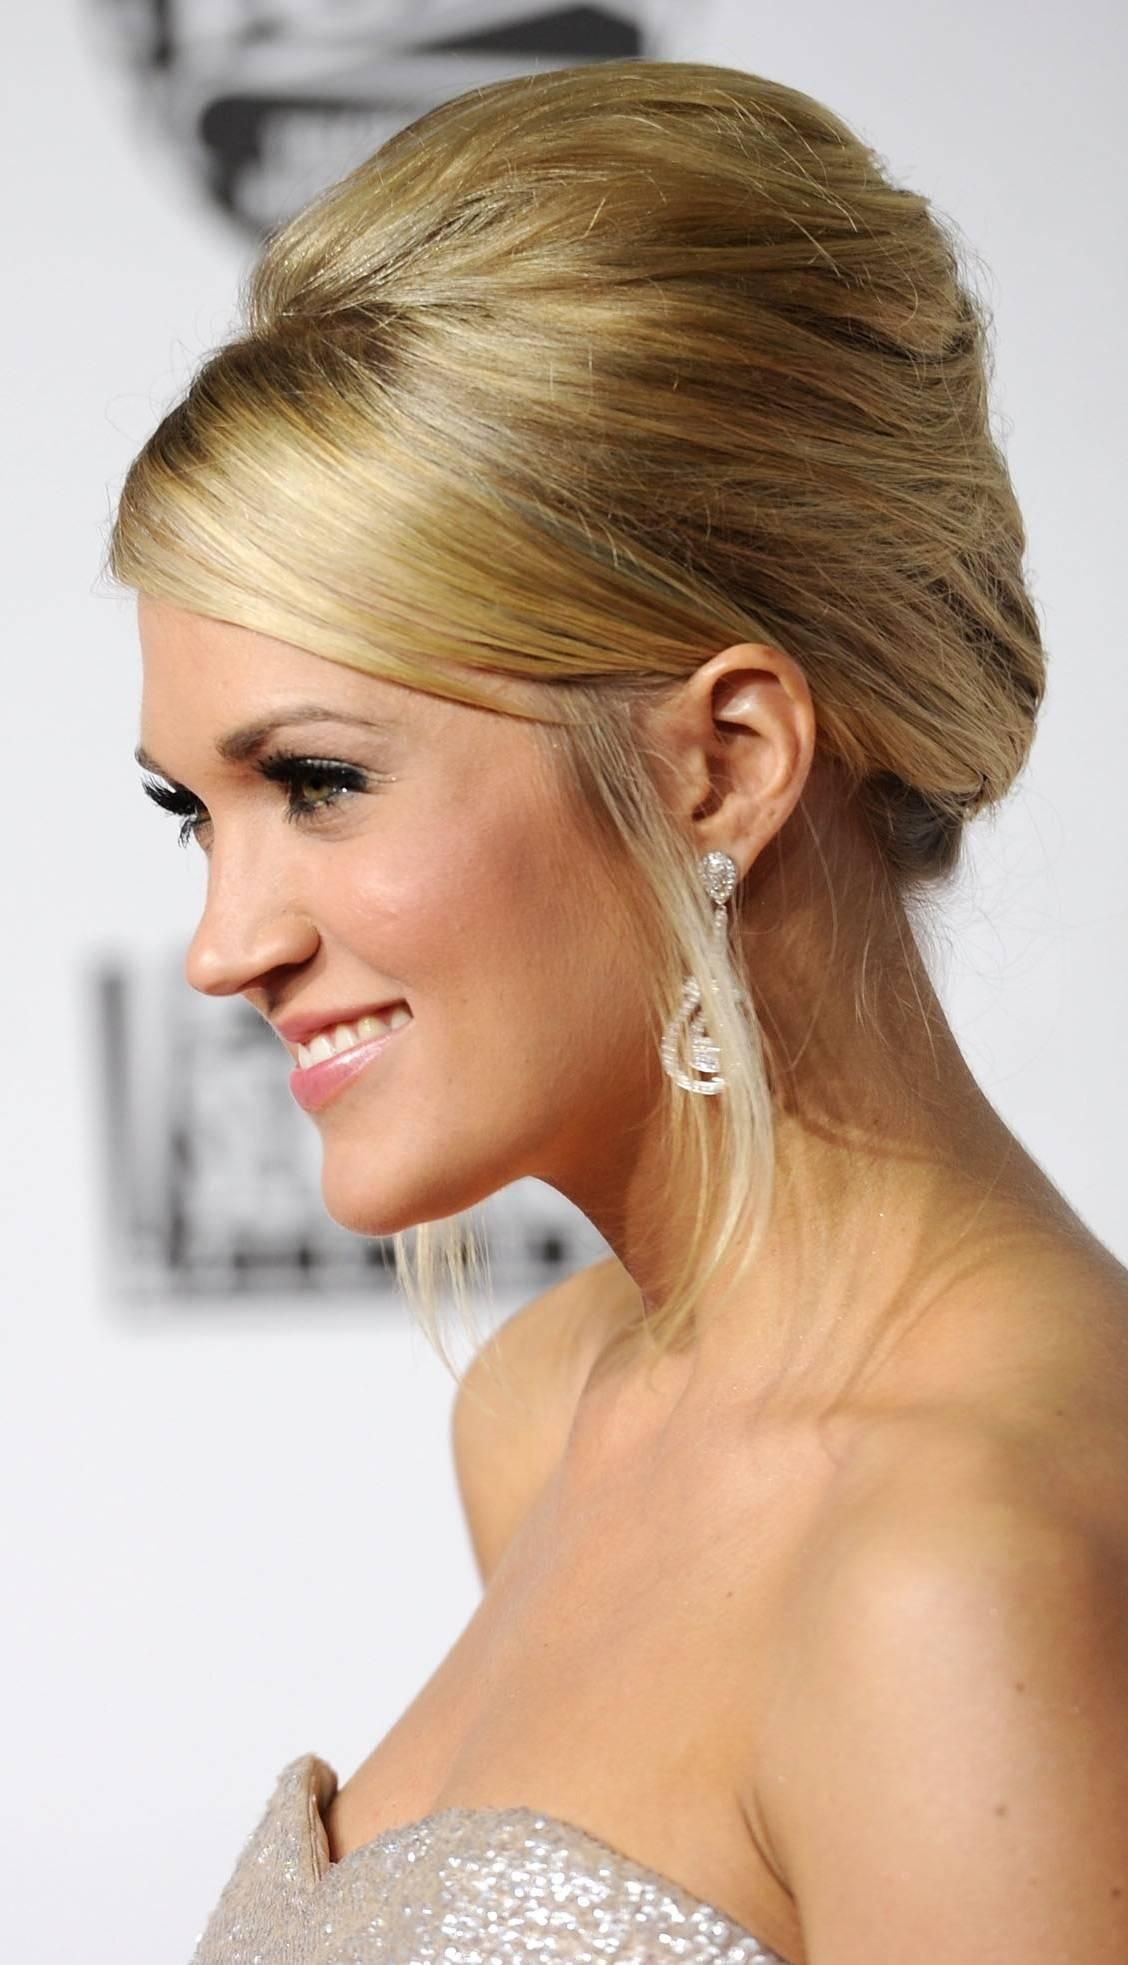 carrie underwood classic updo hairstyle | hair & beauty tips